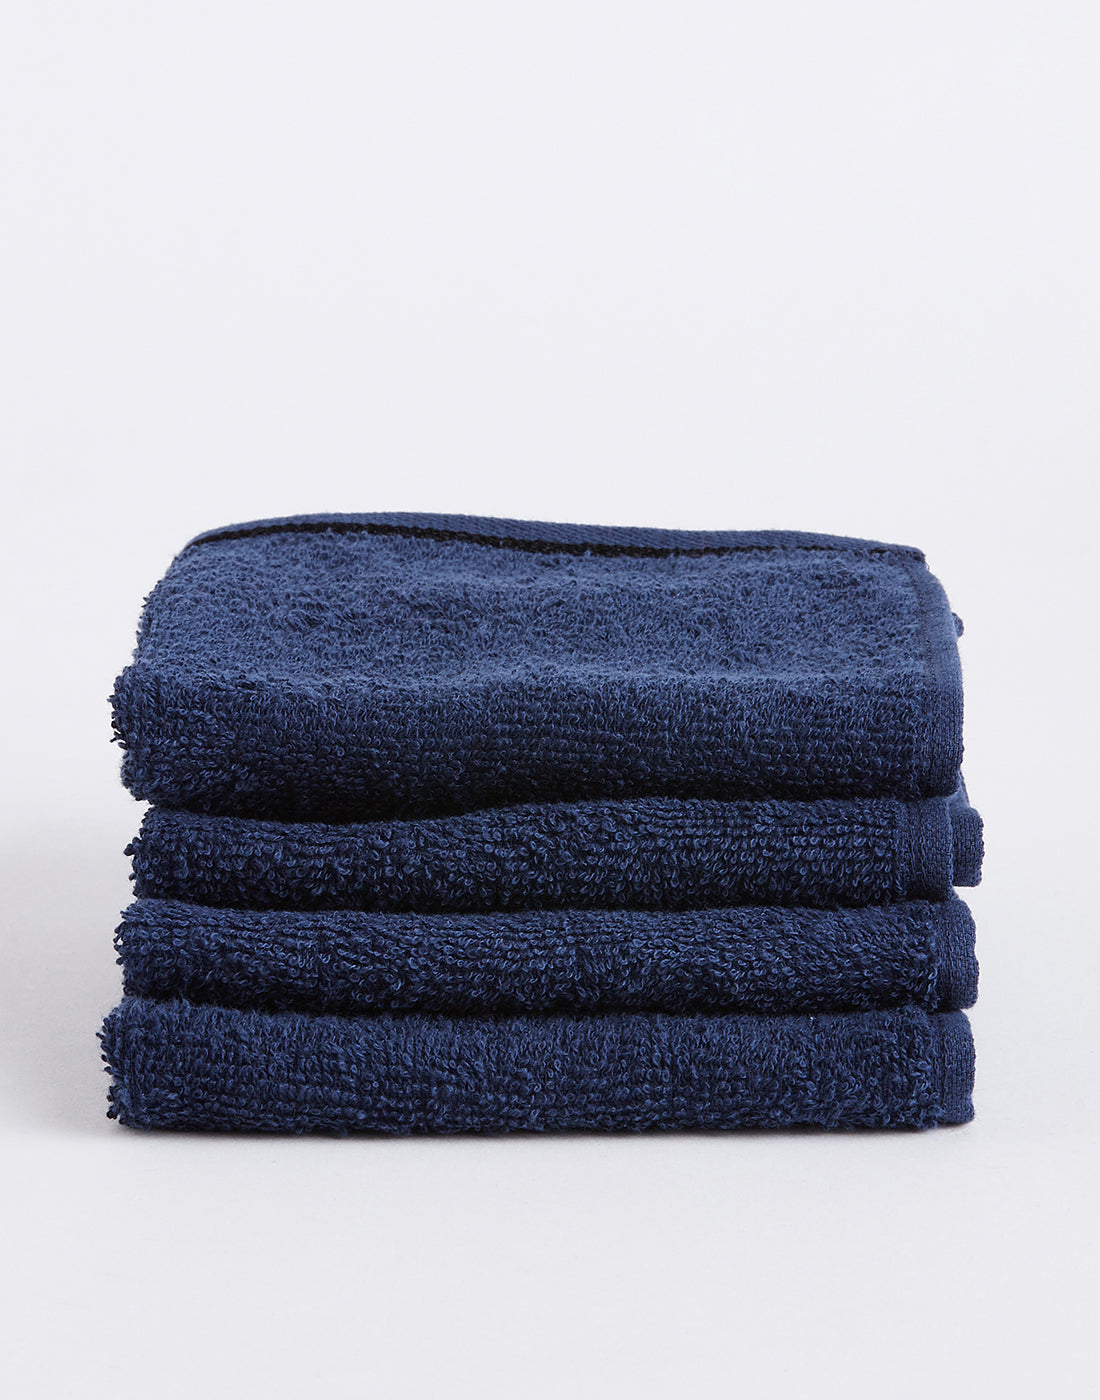 Octave Navy Set of 4 Cotton Face Towels